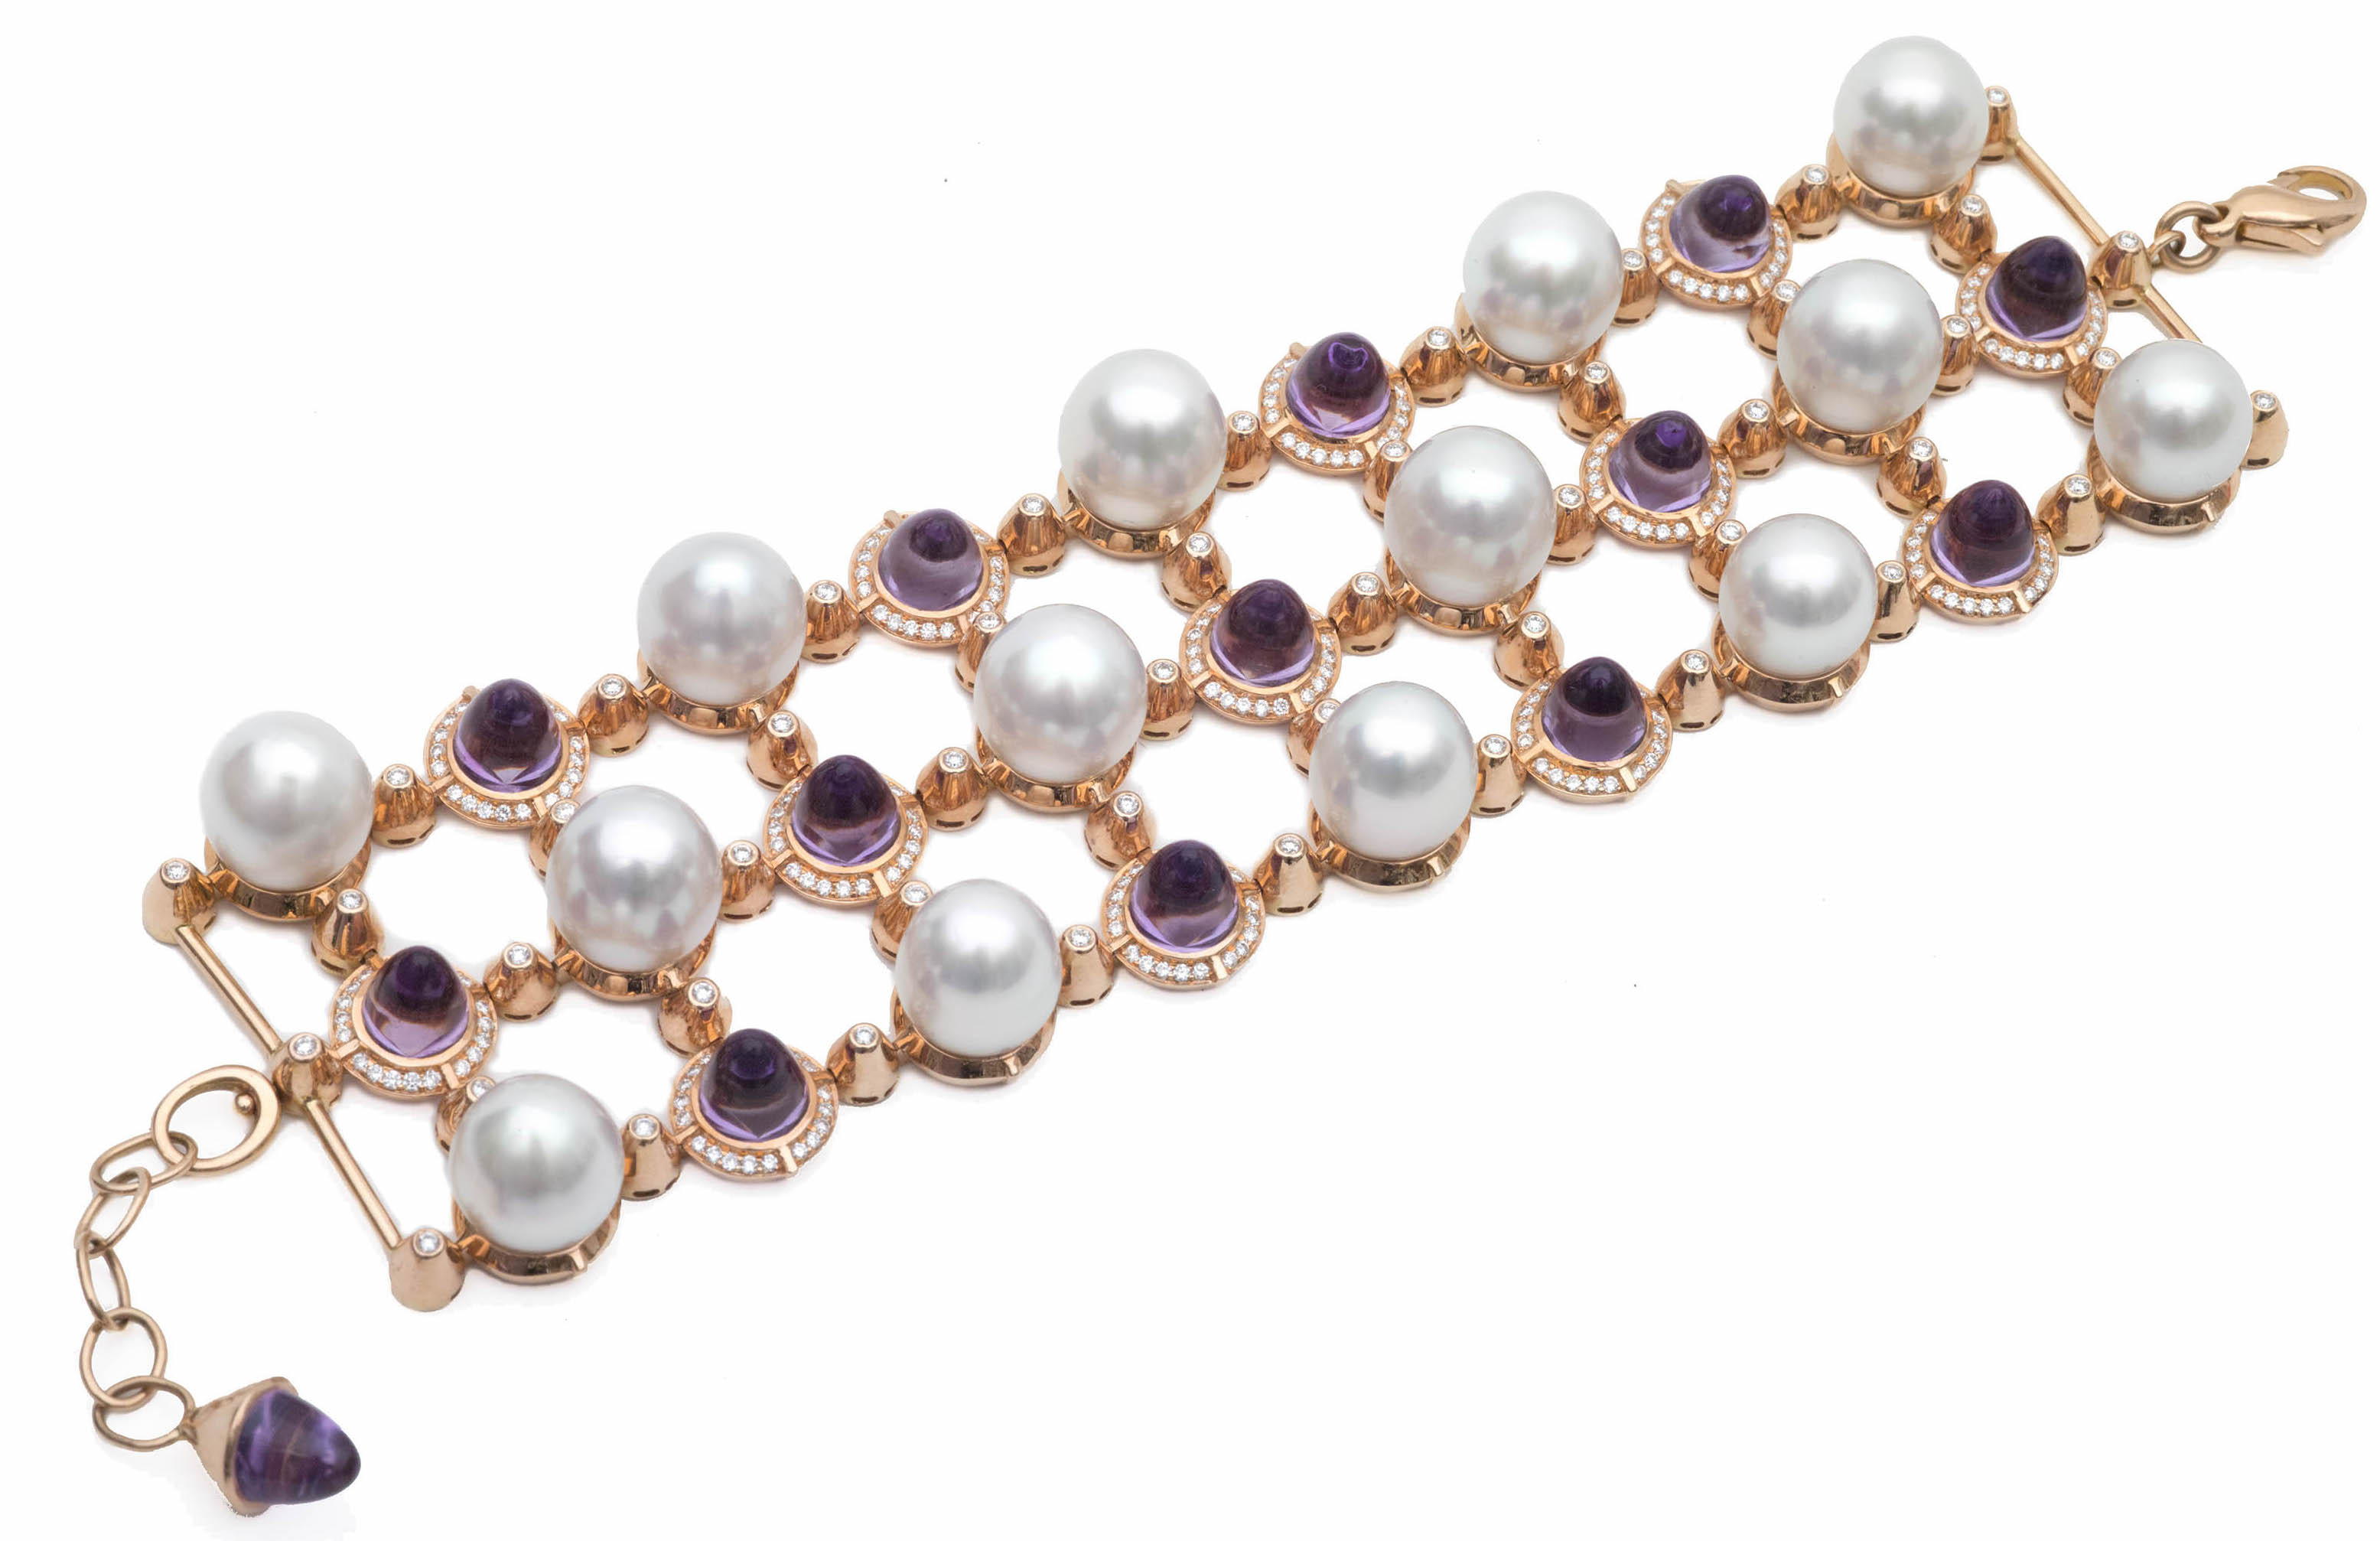 Tara Pearls amethyst and pearl bracelet | JCK On Your Market